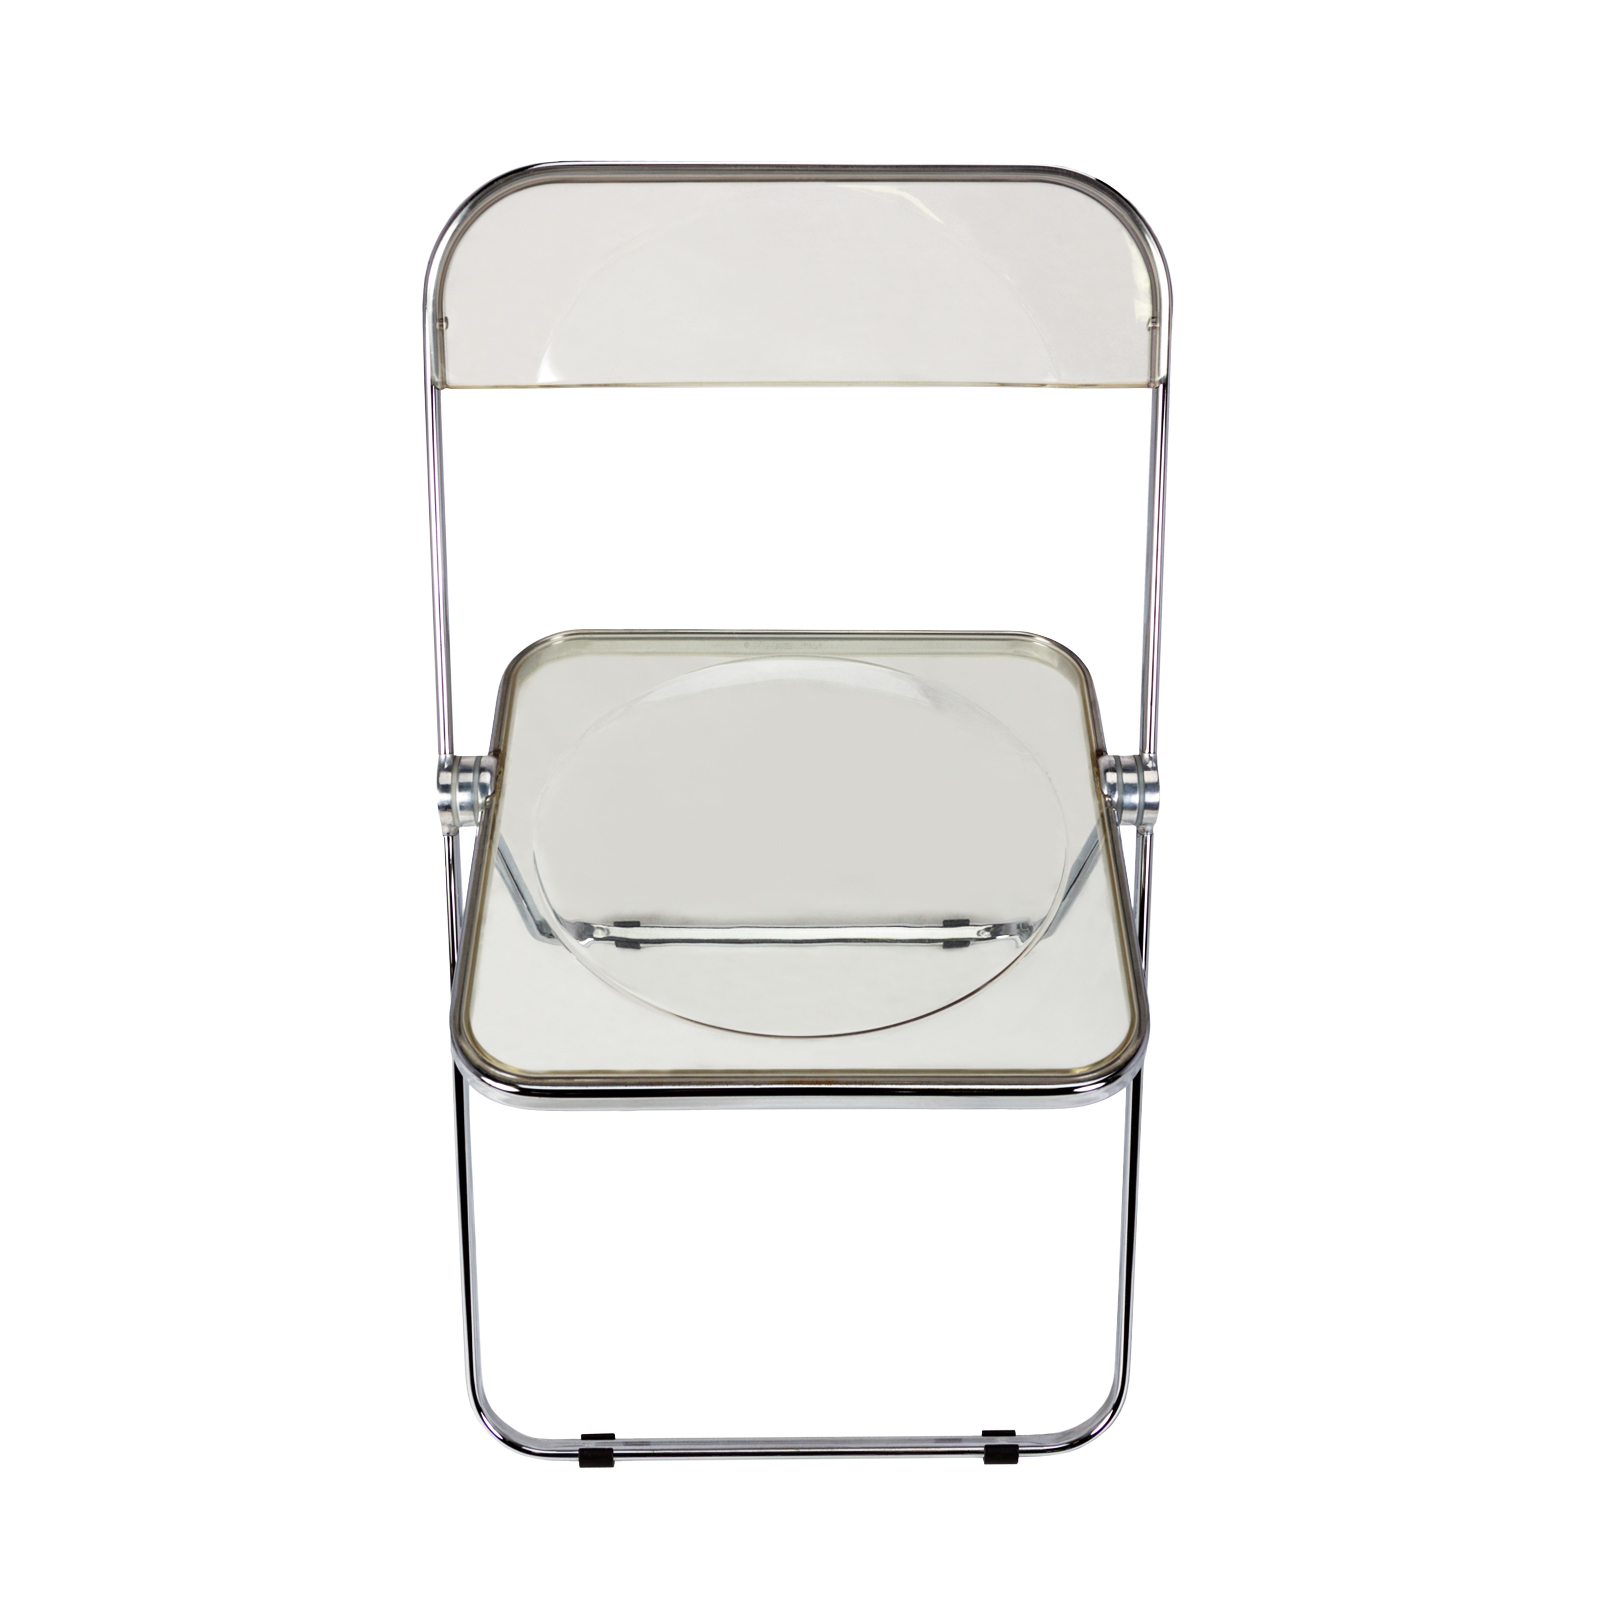 Folding Chairs For Rent Giancarlo Piretti Plia Folding Chair Rentals Furniture